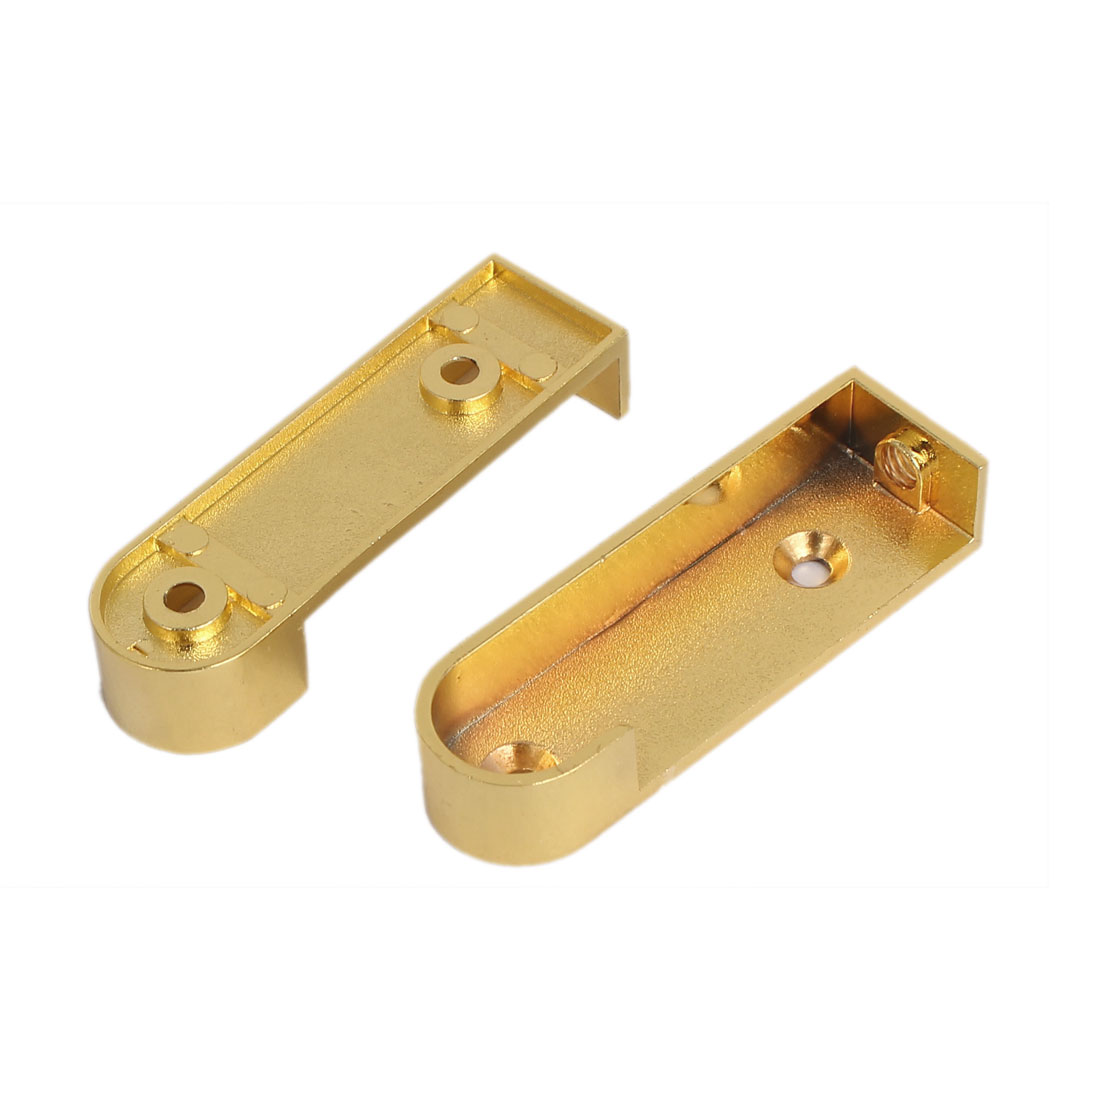 Wardrobe Closet Metal Rod Flange Holder Bracket 16mm Dia Gold Tone 2pcs